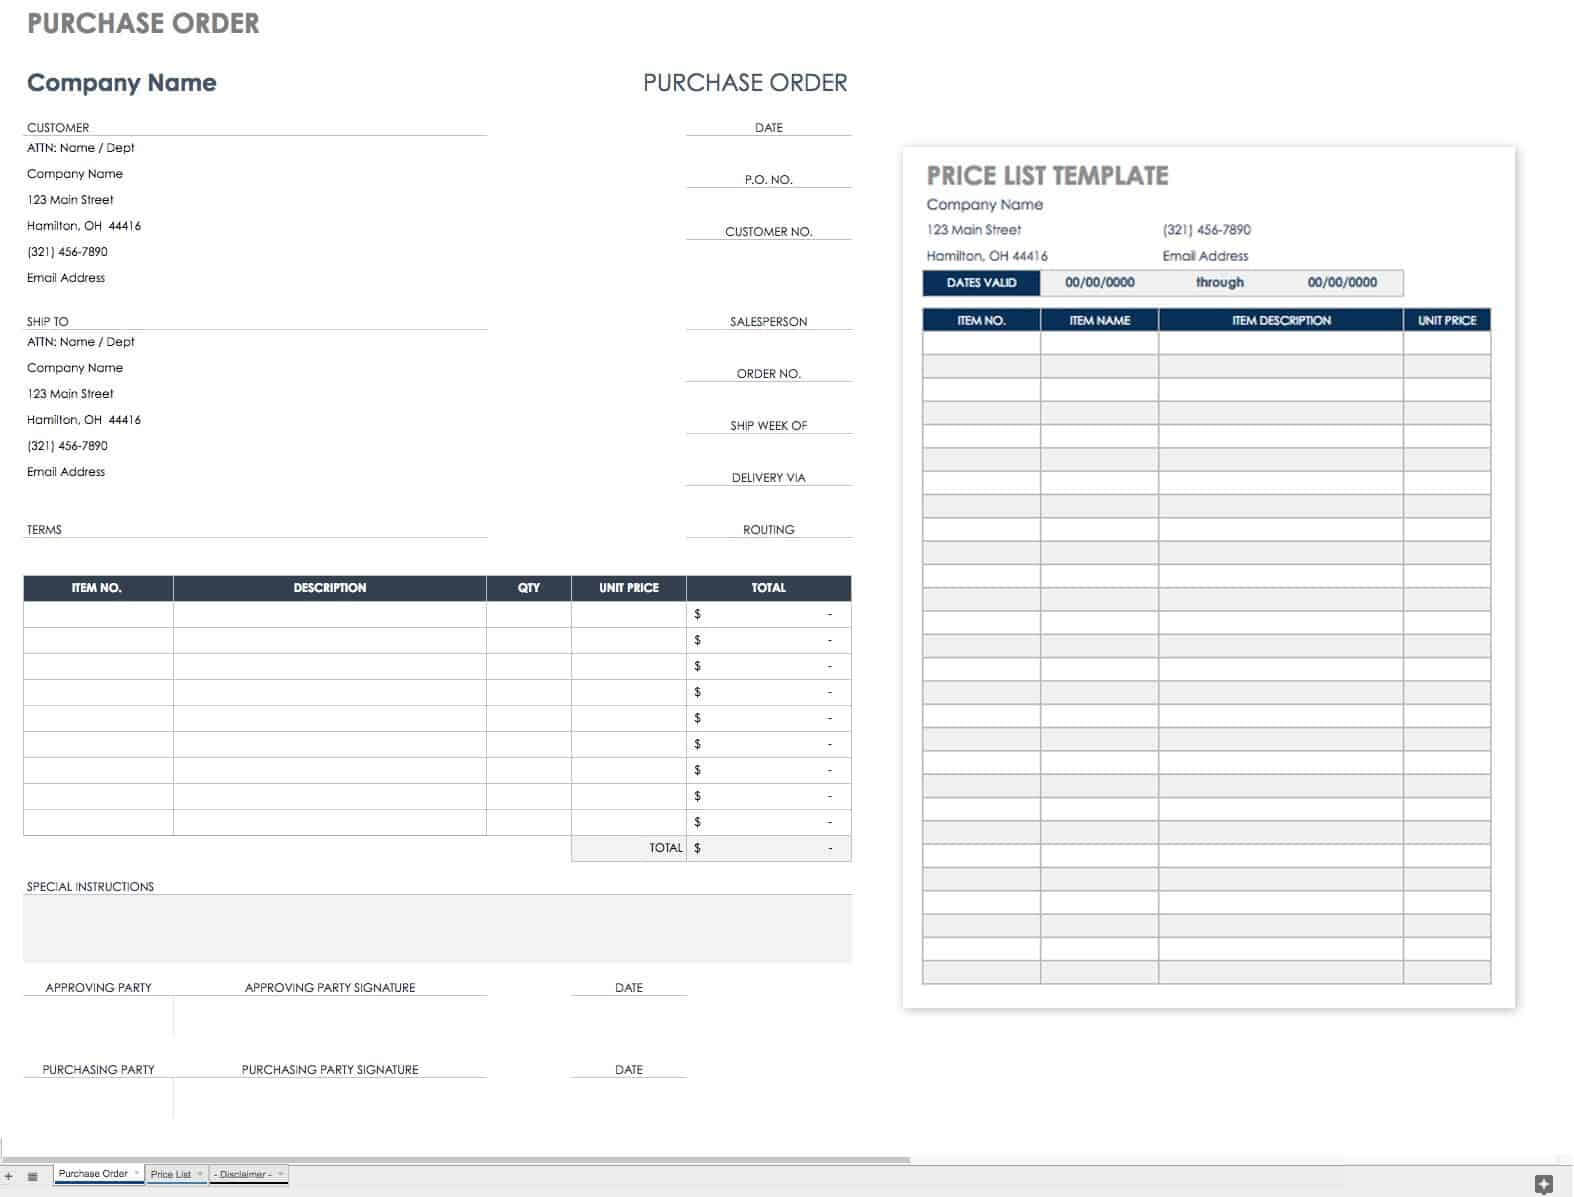 Free Purchase Order Templates | Smartsheet With Blank Money Order Template